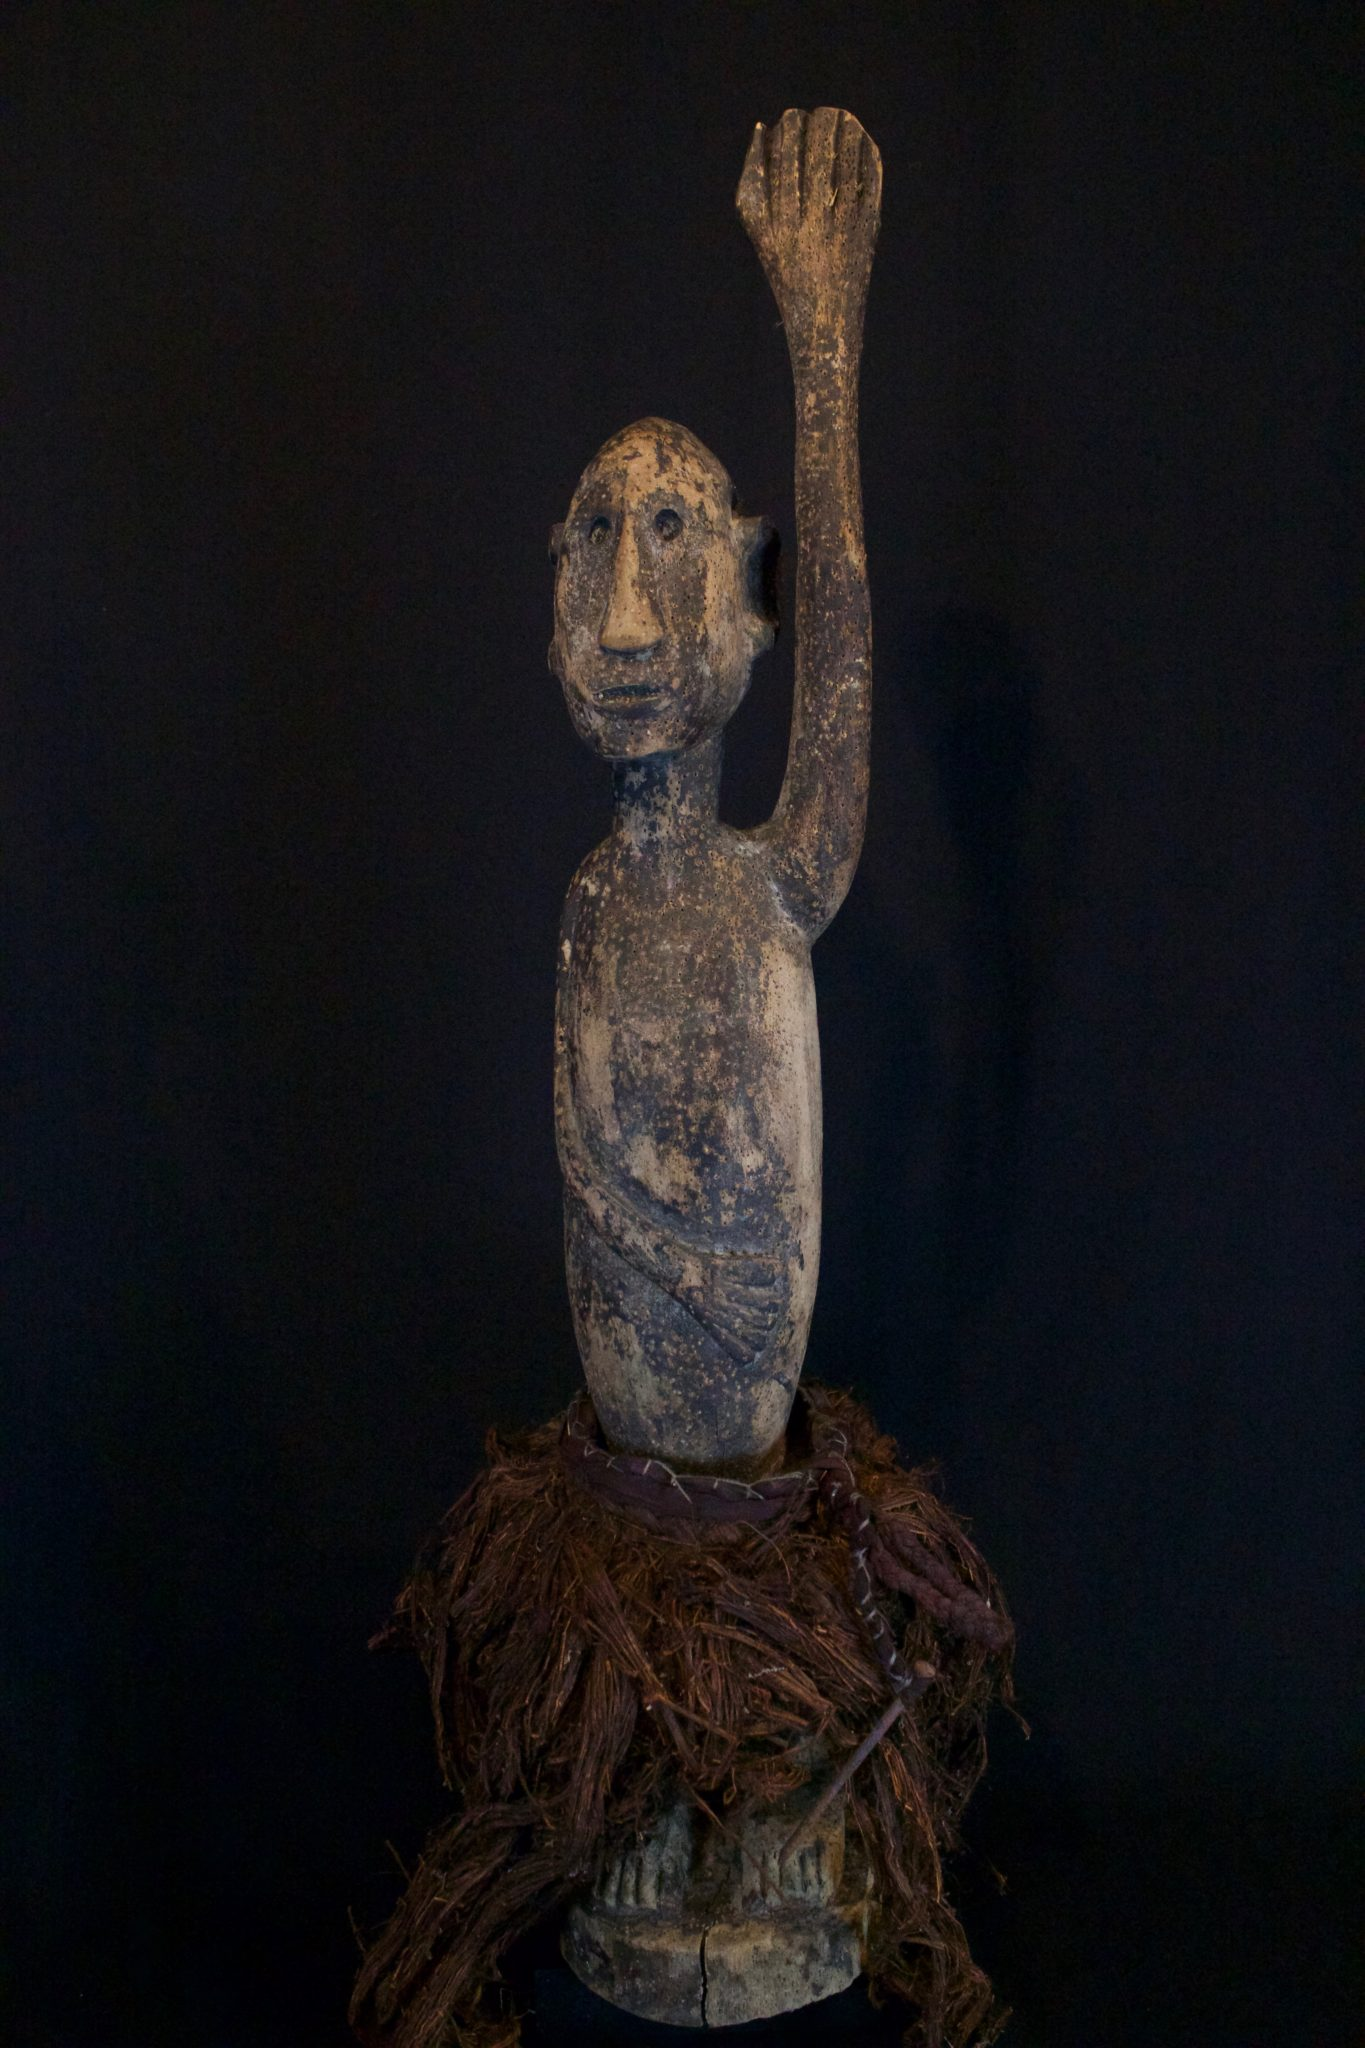 """Shaman Healing Fetish, Lesser Sunda Islands, Indonesia, Early 20th c, Wood, fiber, metal nail. Kept in the shaman's home. Covered in tiny holes from being pierced by its attached nail during rituals. Found in the ocean. 30"""" x 12"""" x 8"""", sold"""